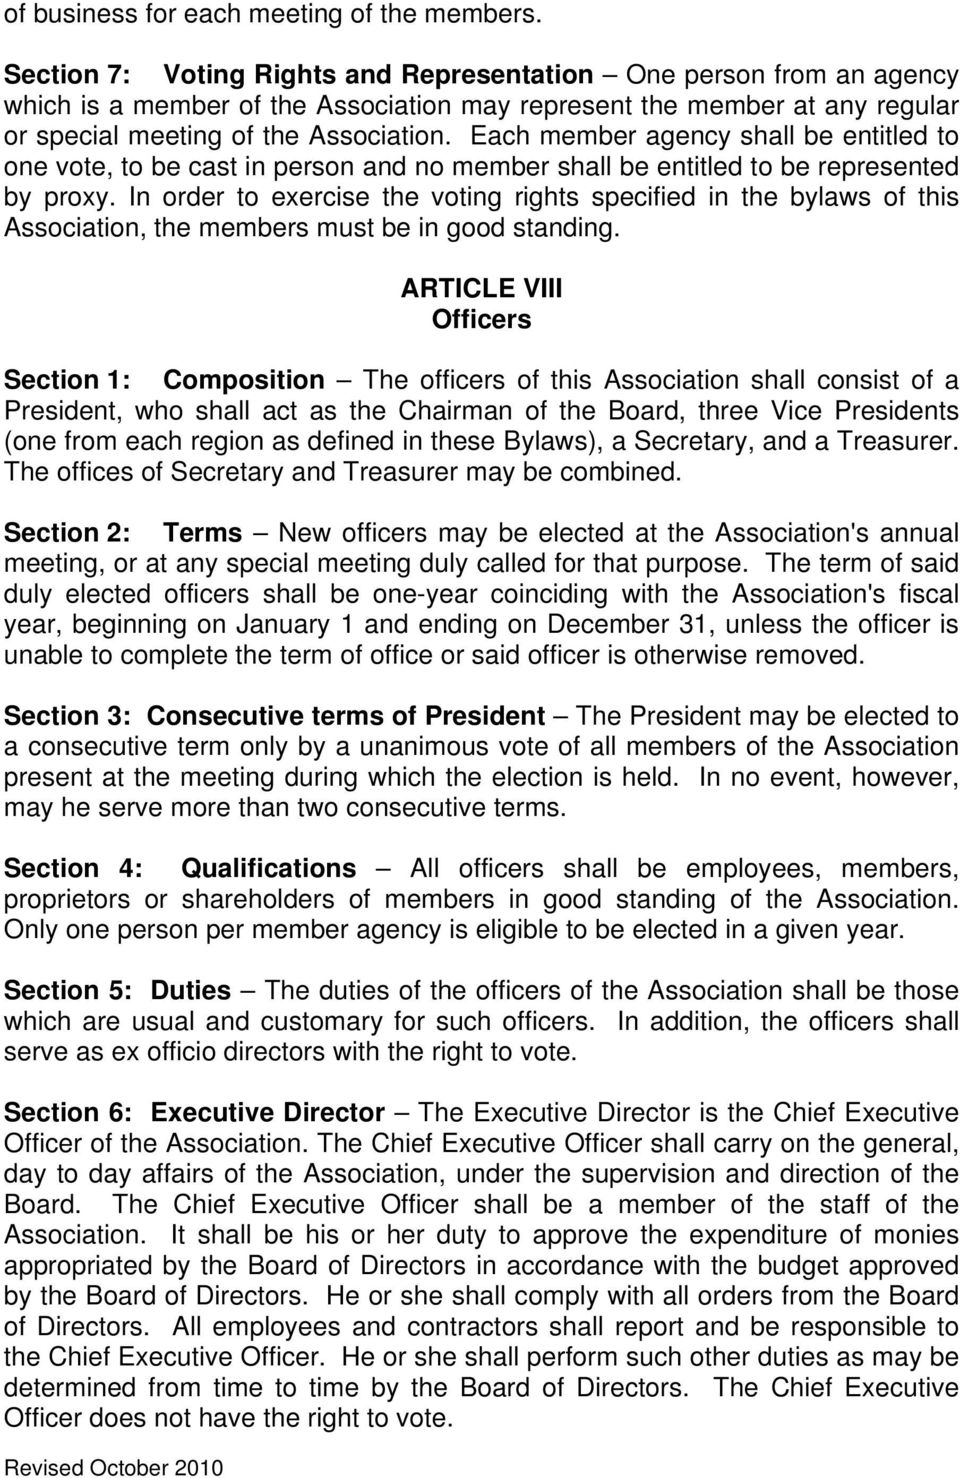 Each member agency shall be entitled to one vote, to be cast in person and no member shall be entitled to be represented by proxy.